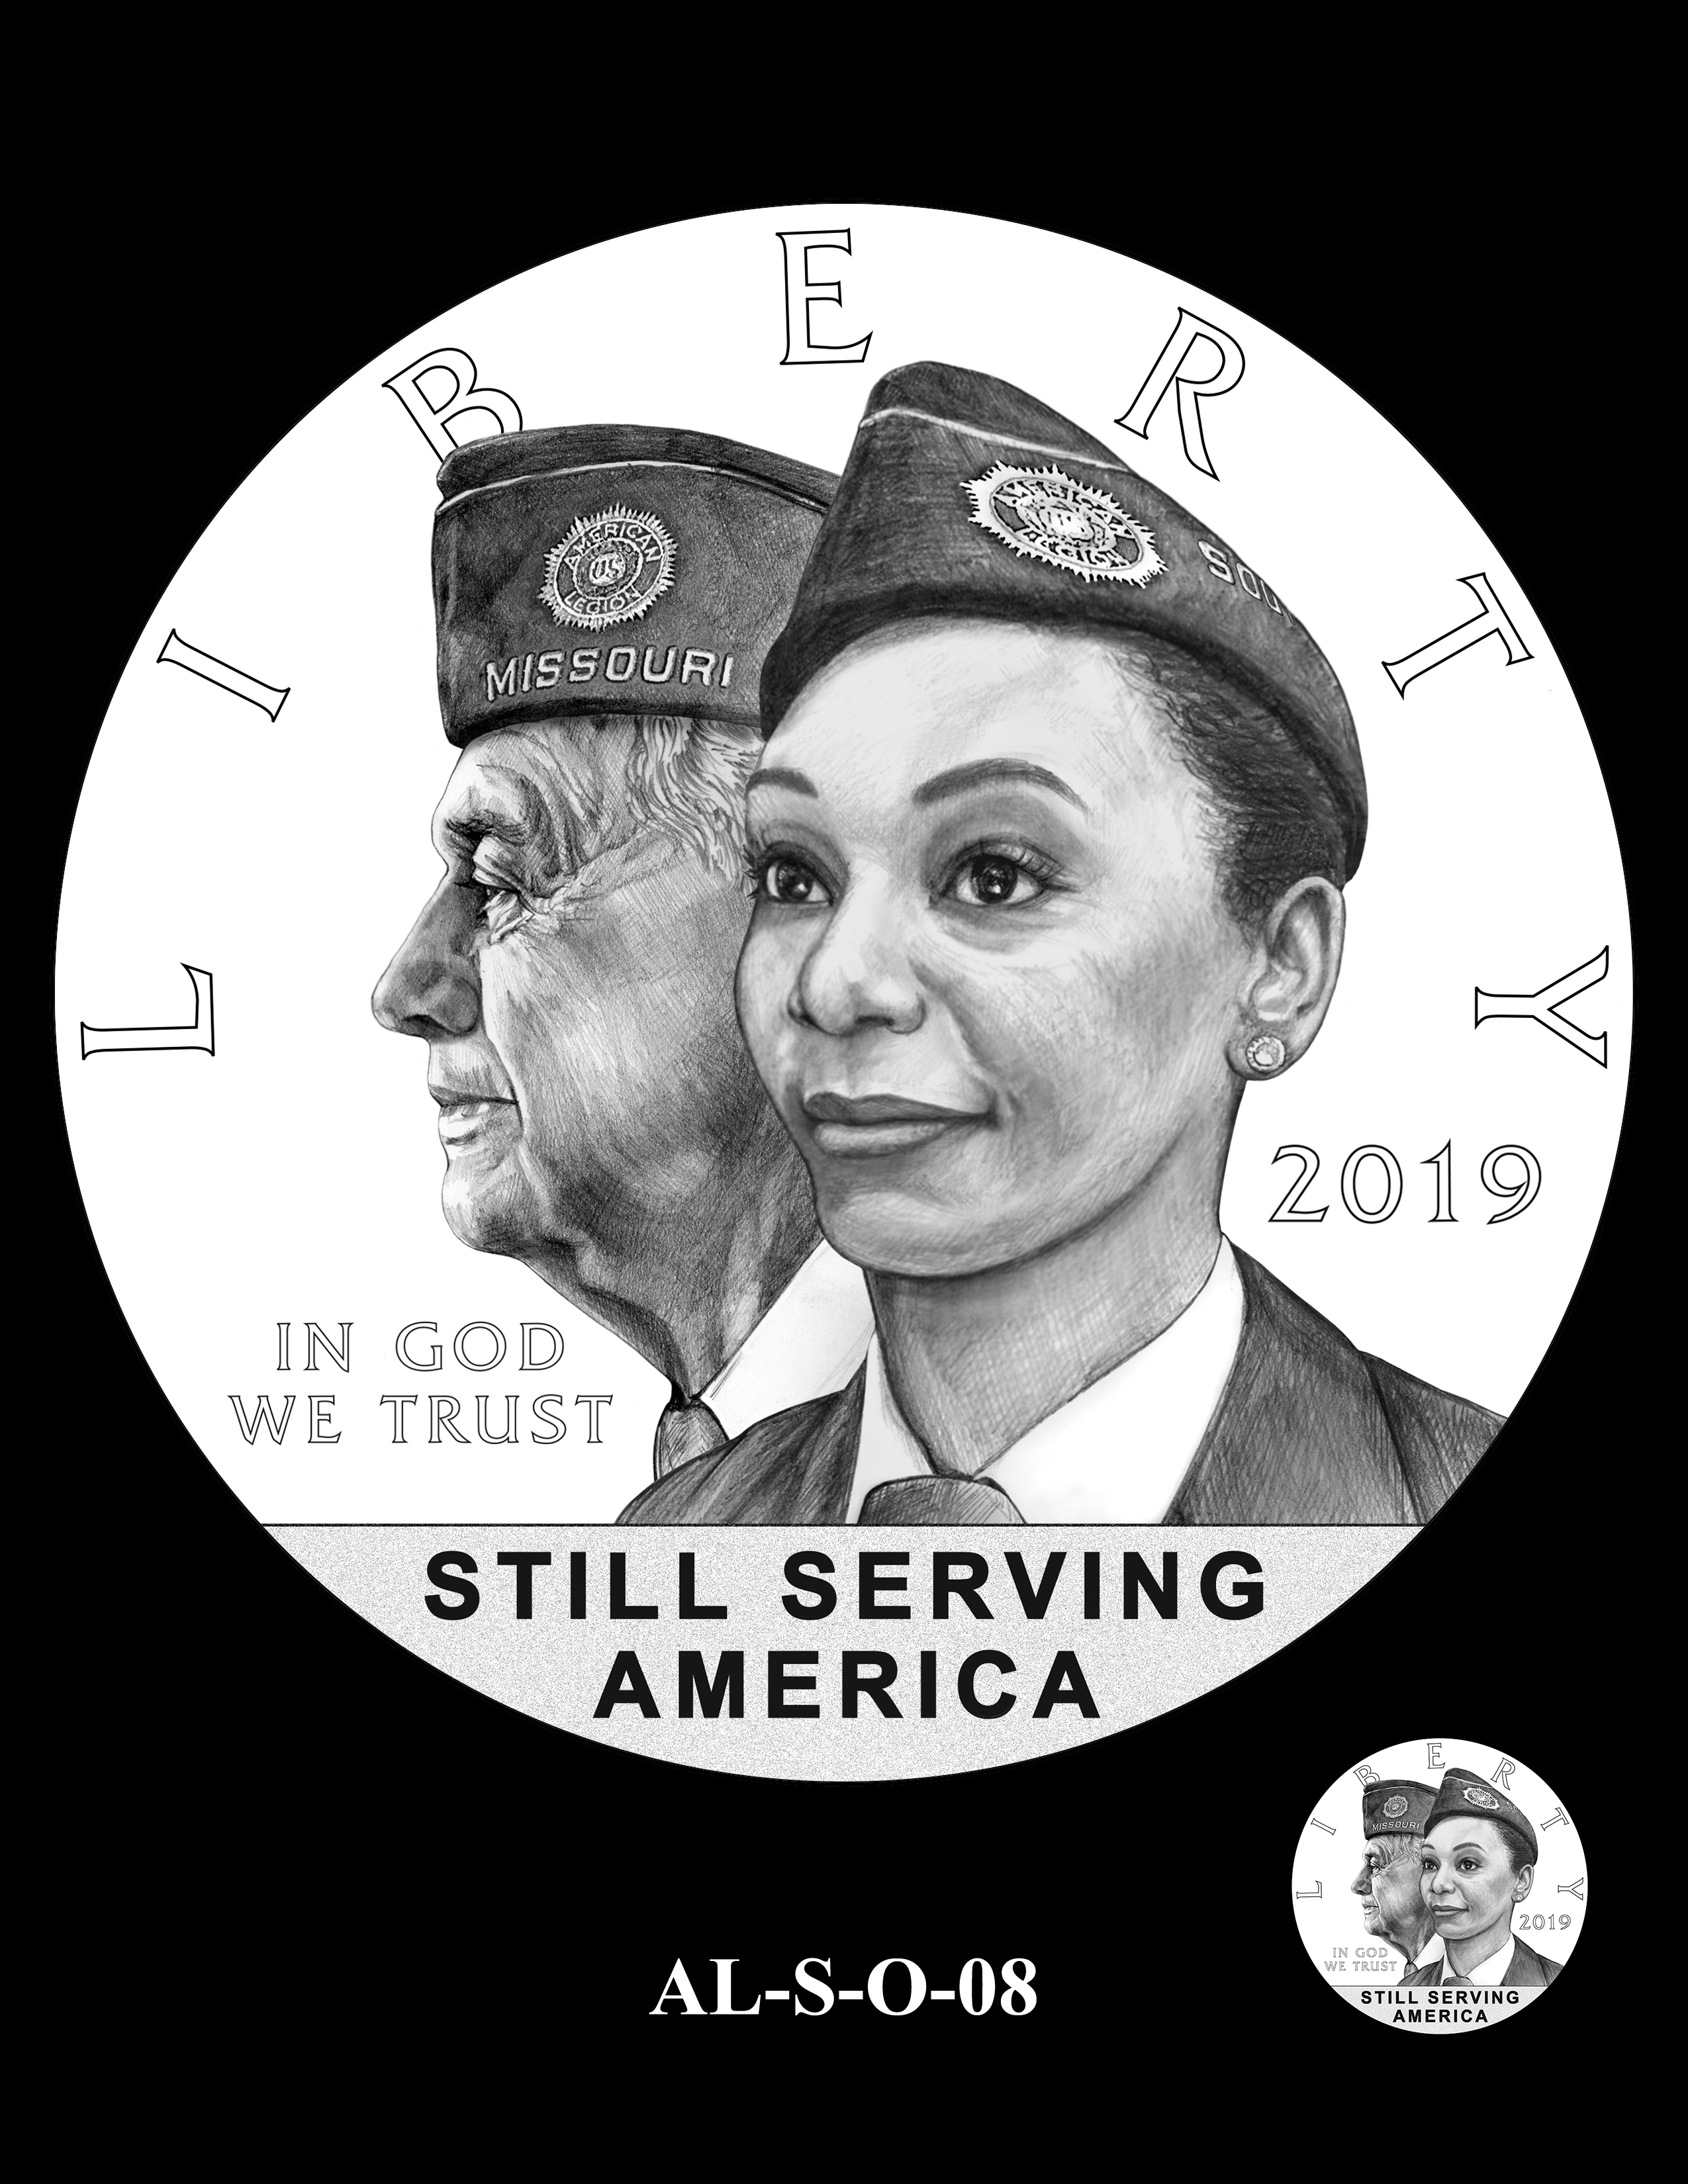 AL-S-O-08 -- 2019 American Legion 100th Anniversary Commemorative Coin Program - Silver Obverse